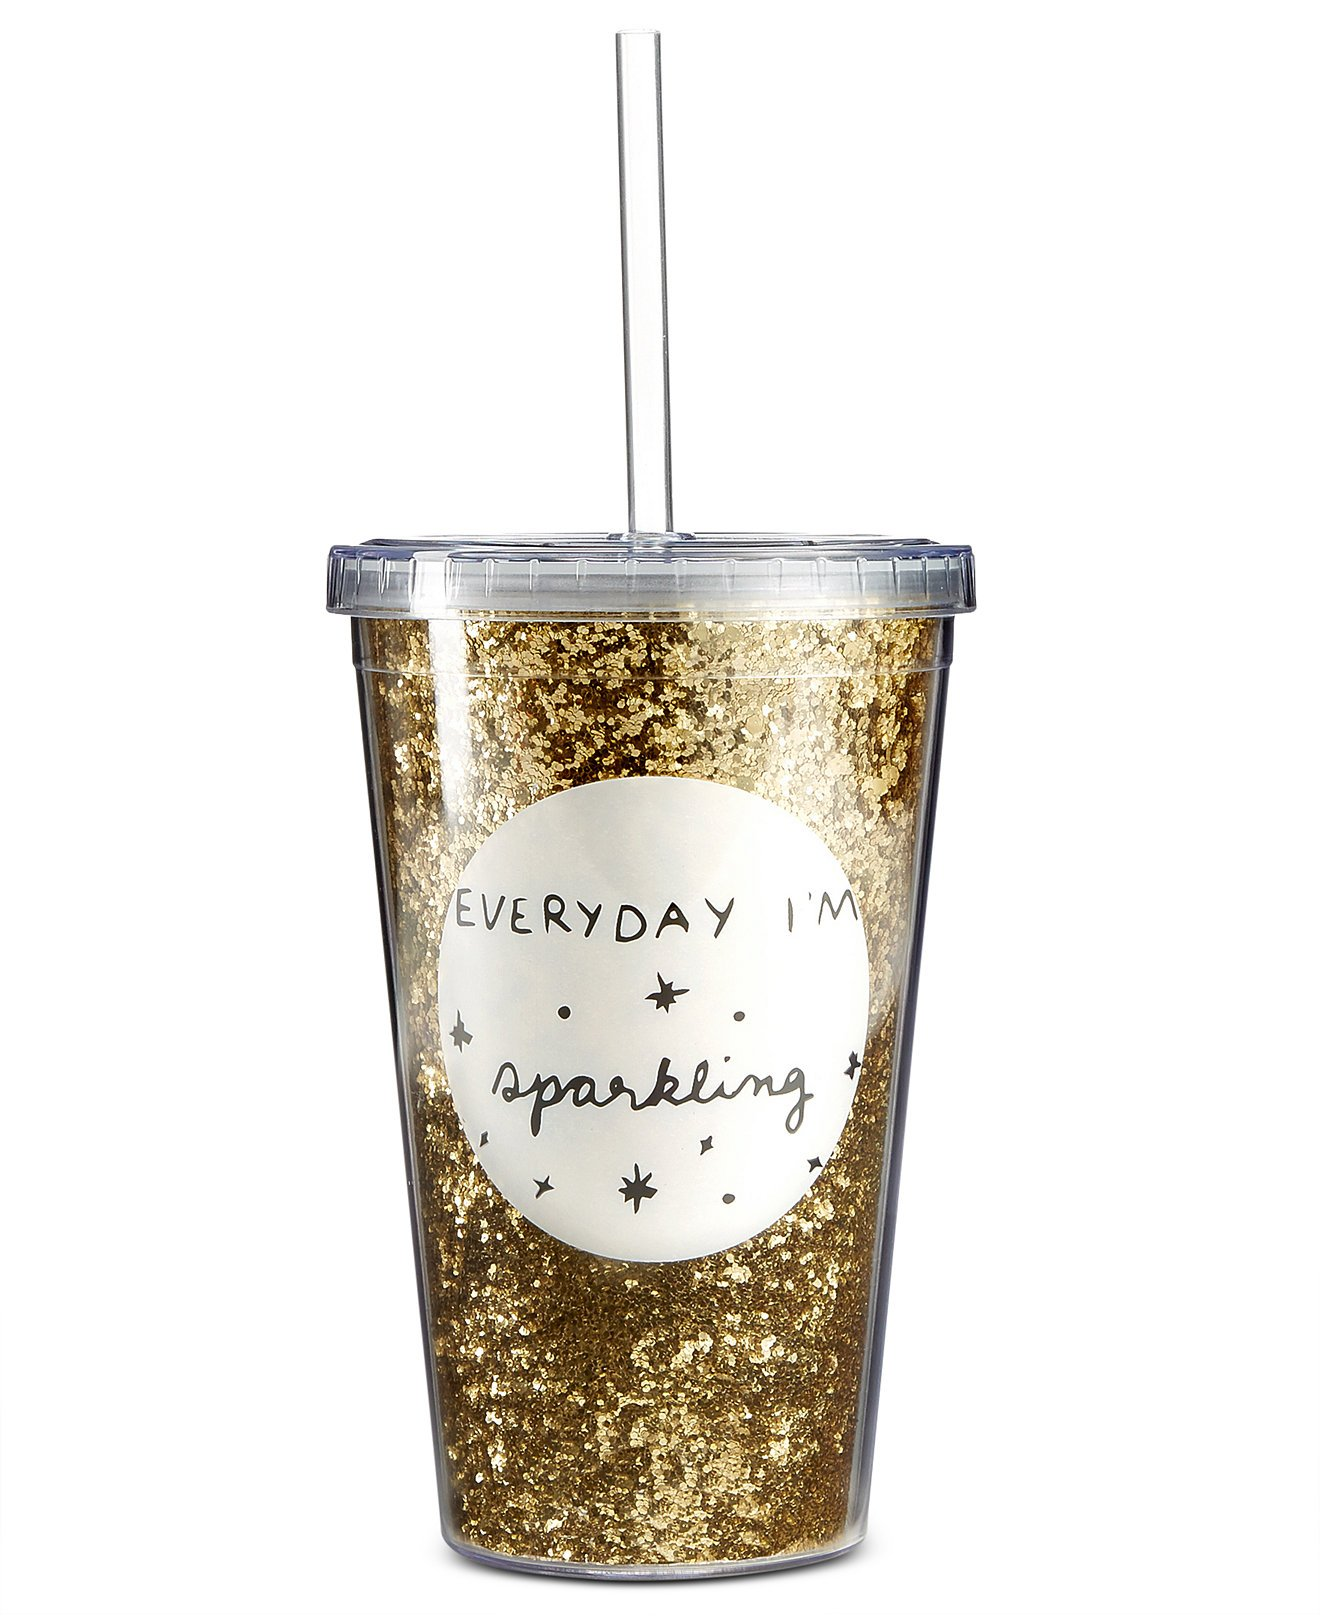 Celebrate Shop 16-oz 'Everyday I'm Sparkling' Glitter Covered Tumbler with Straw, Gold